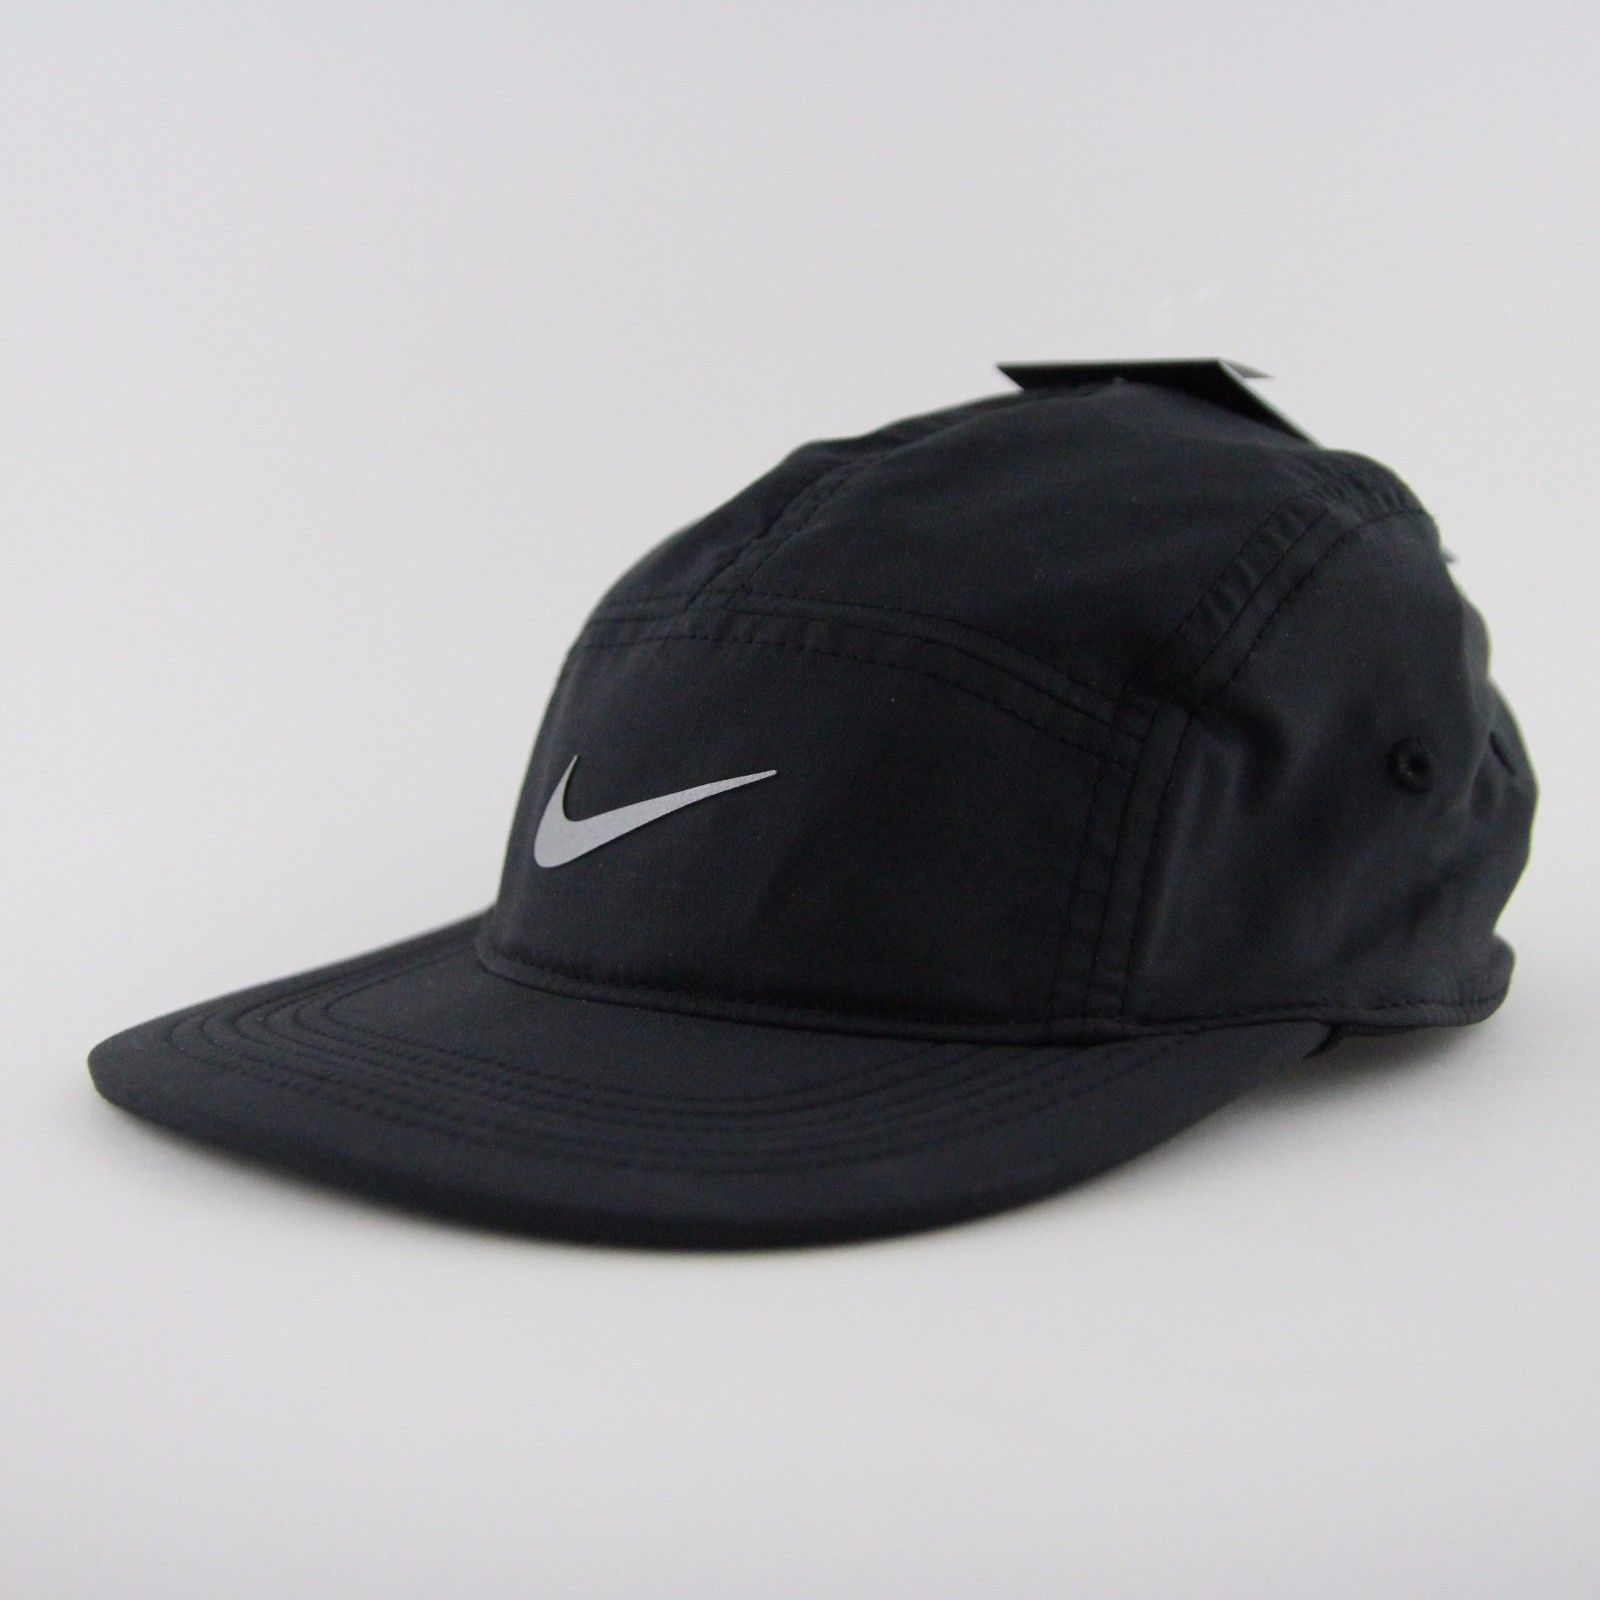 Men s Nike Aw84 Windrunner Five 5 Panel Black Running Cap Hat Os 876077 010  Nsw 7a9f737a84a